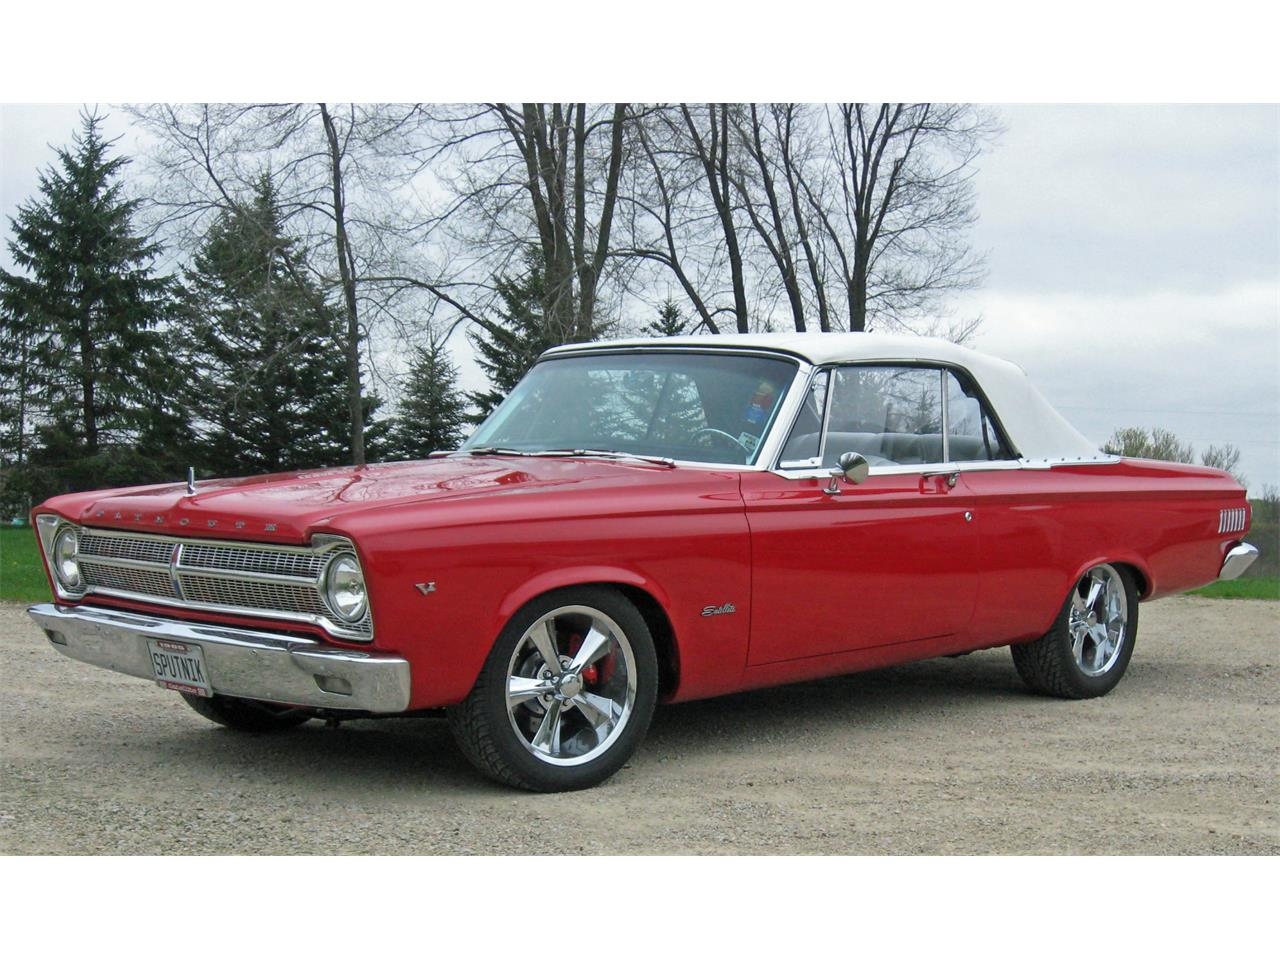 1965 plymouth satellite for sale classiccars com cc 979758 1965 plymouth satellite for sale